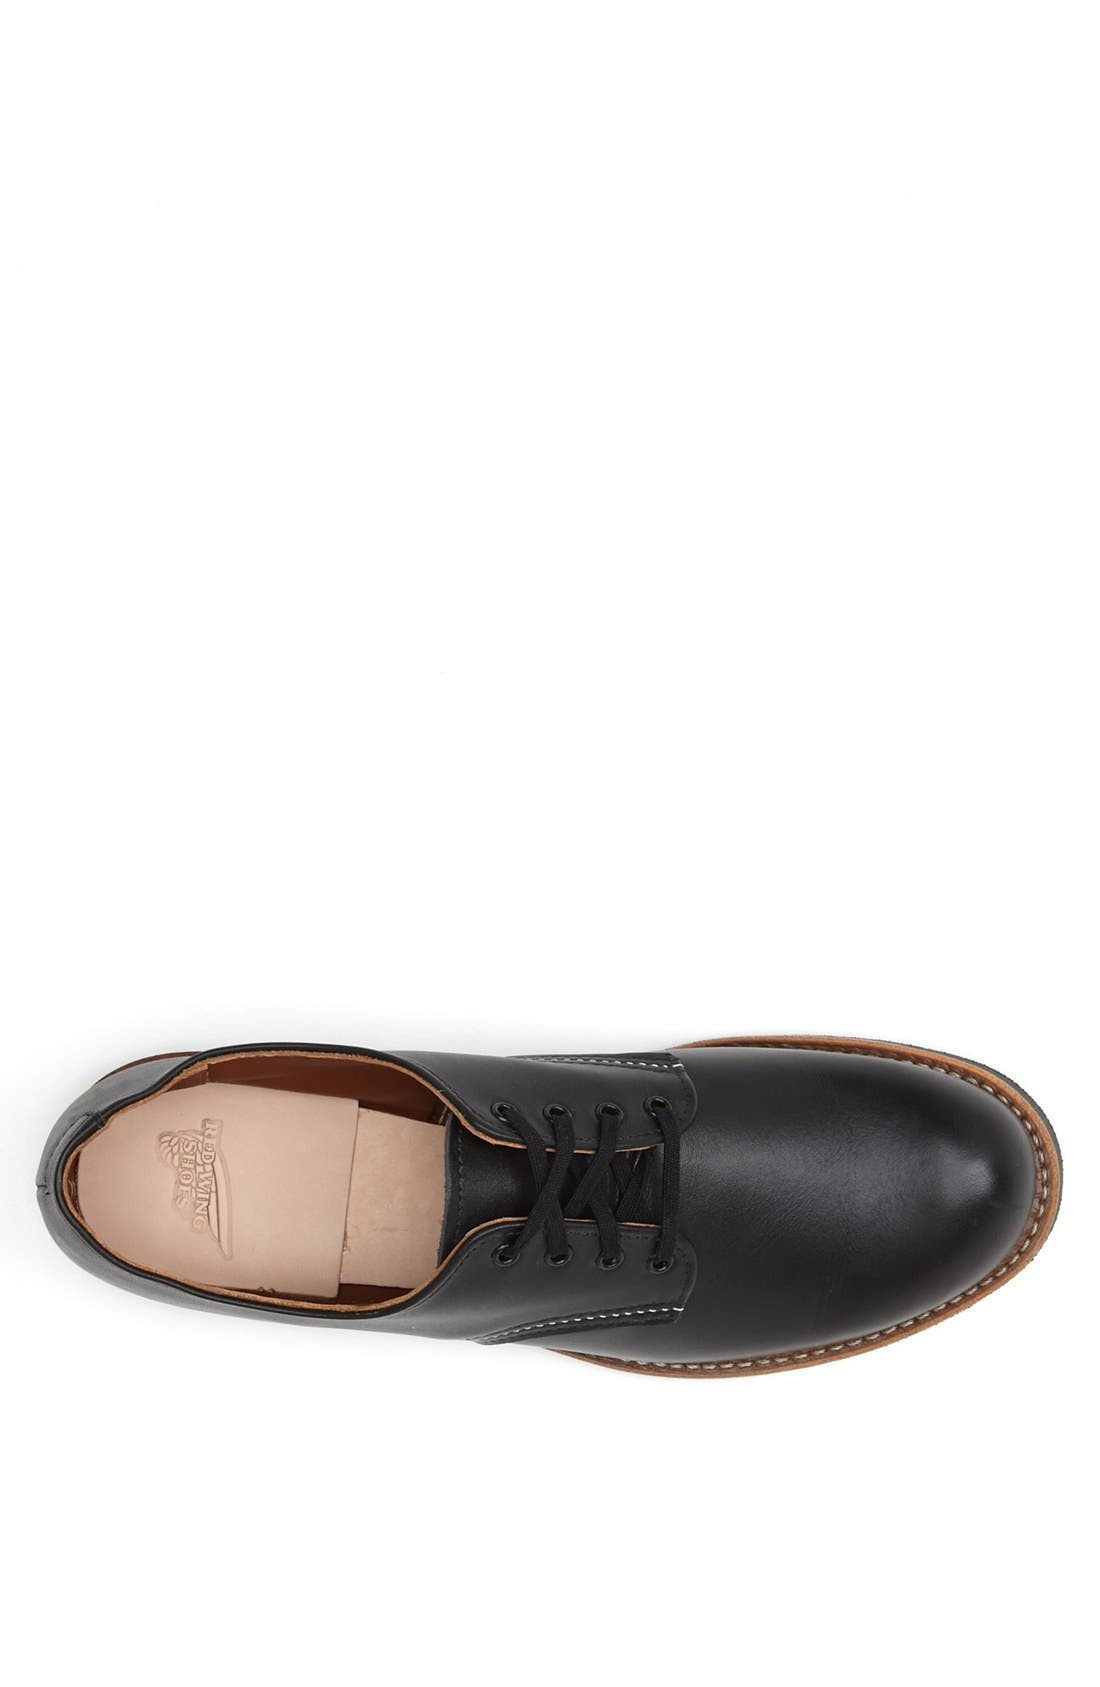 Alternate Image 3  - Red Wing Plain Toe Derby